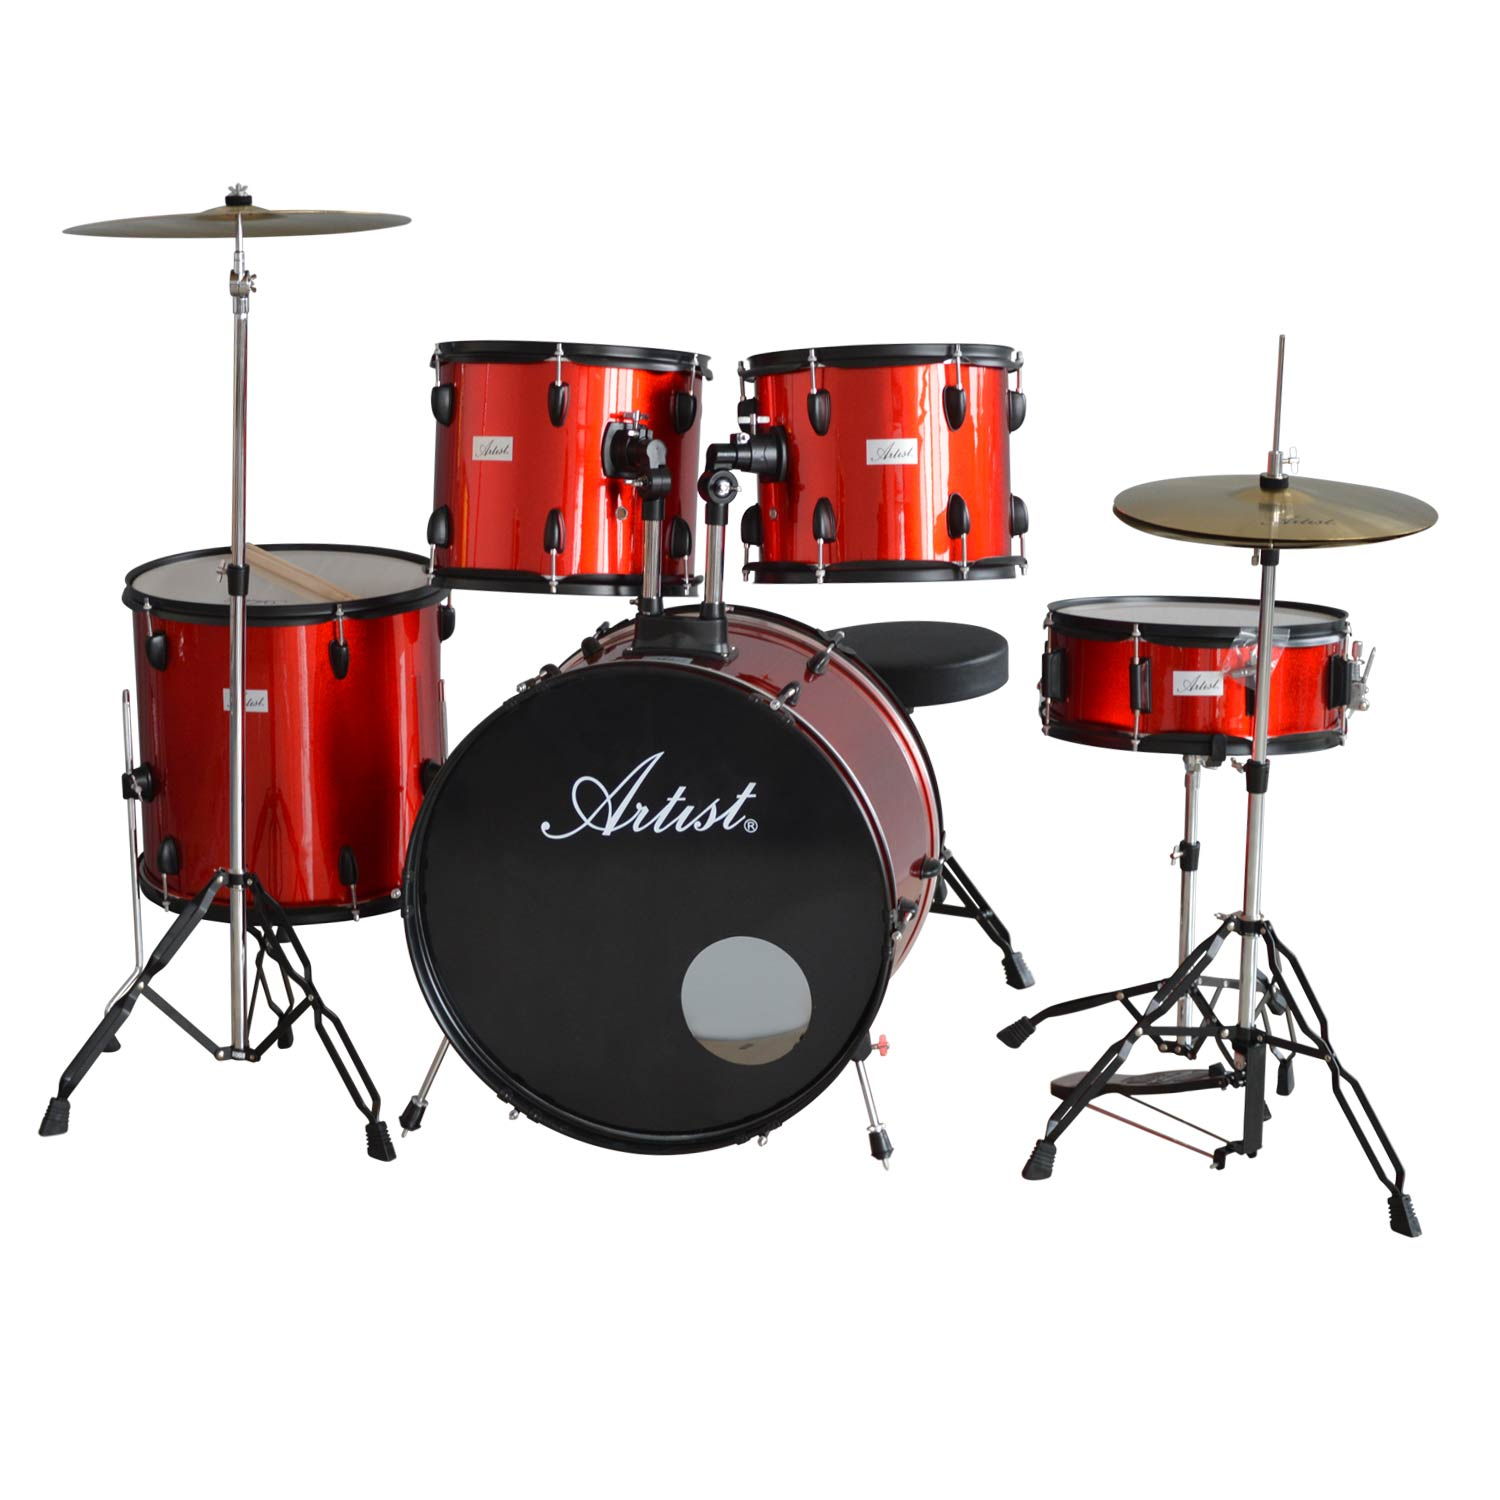 artist adr522 5 piece drum kit cymbals and stool red. Black Bedroom Furniture Sets. Home Design Ideas